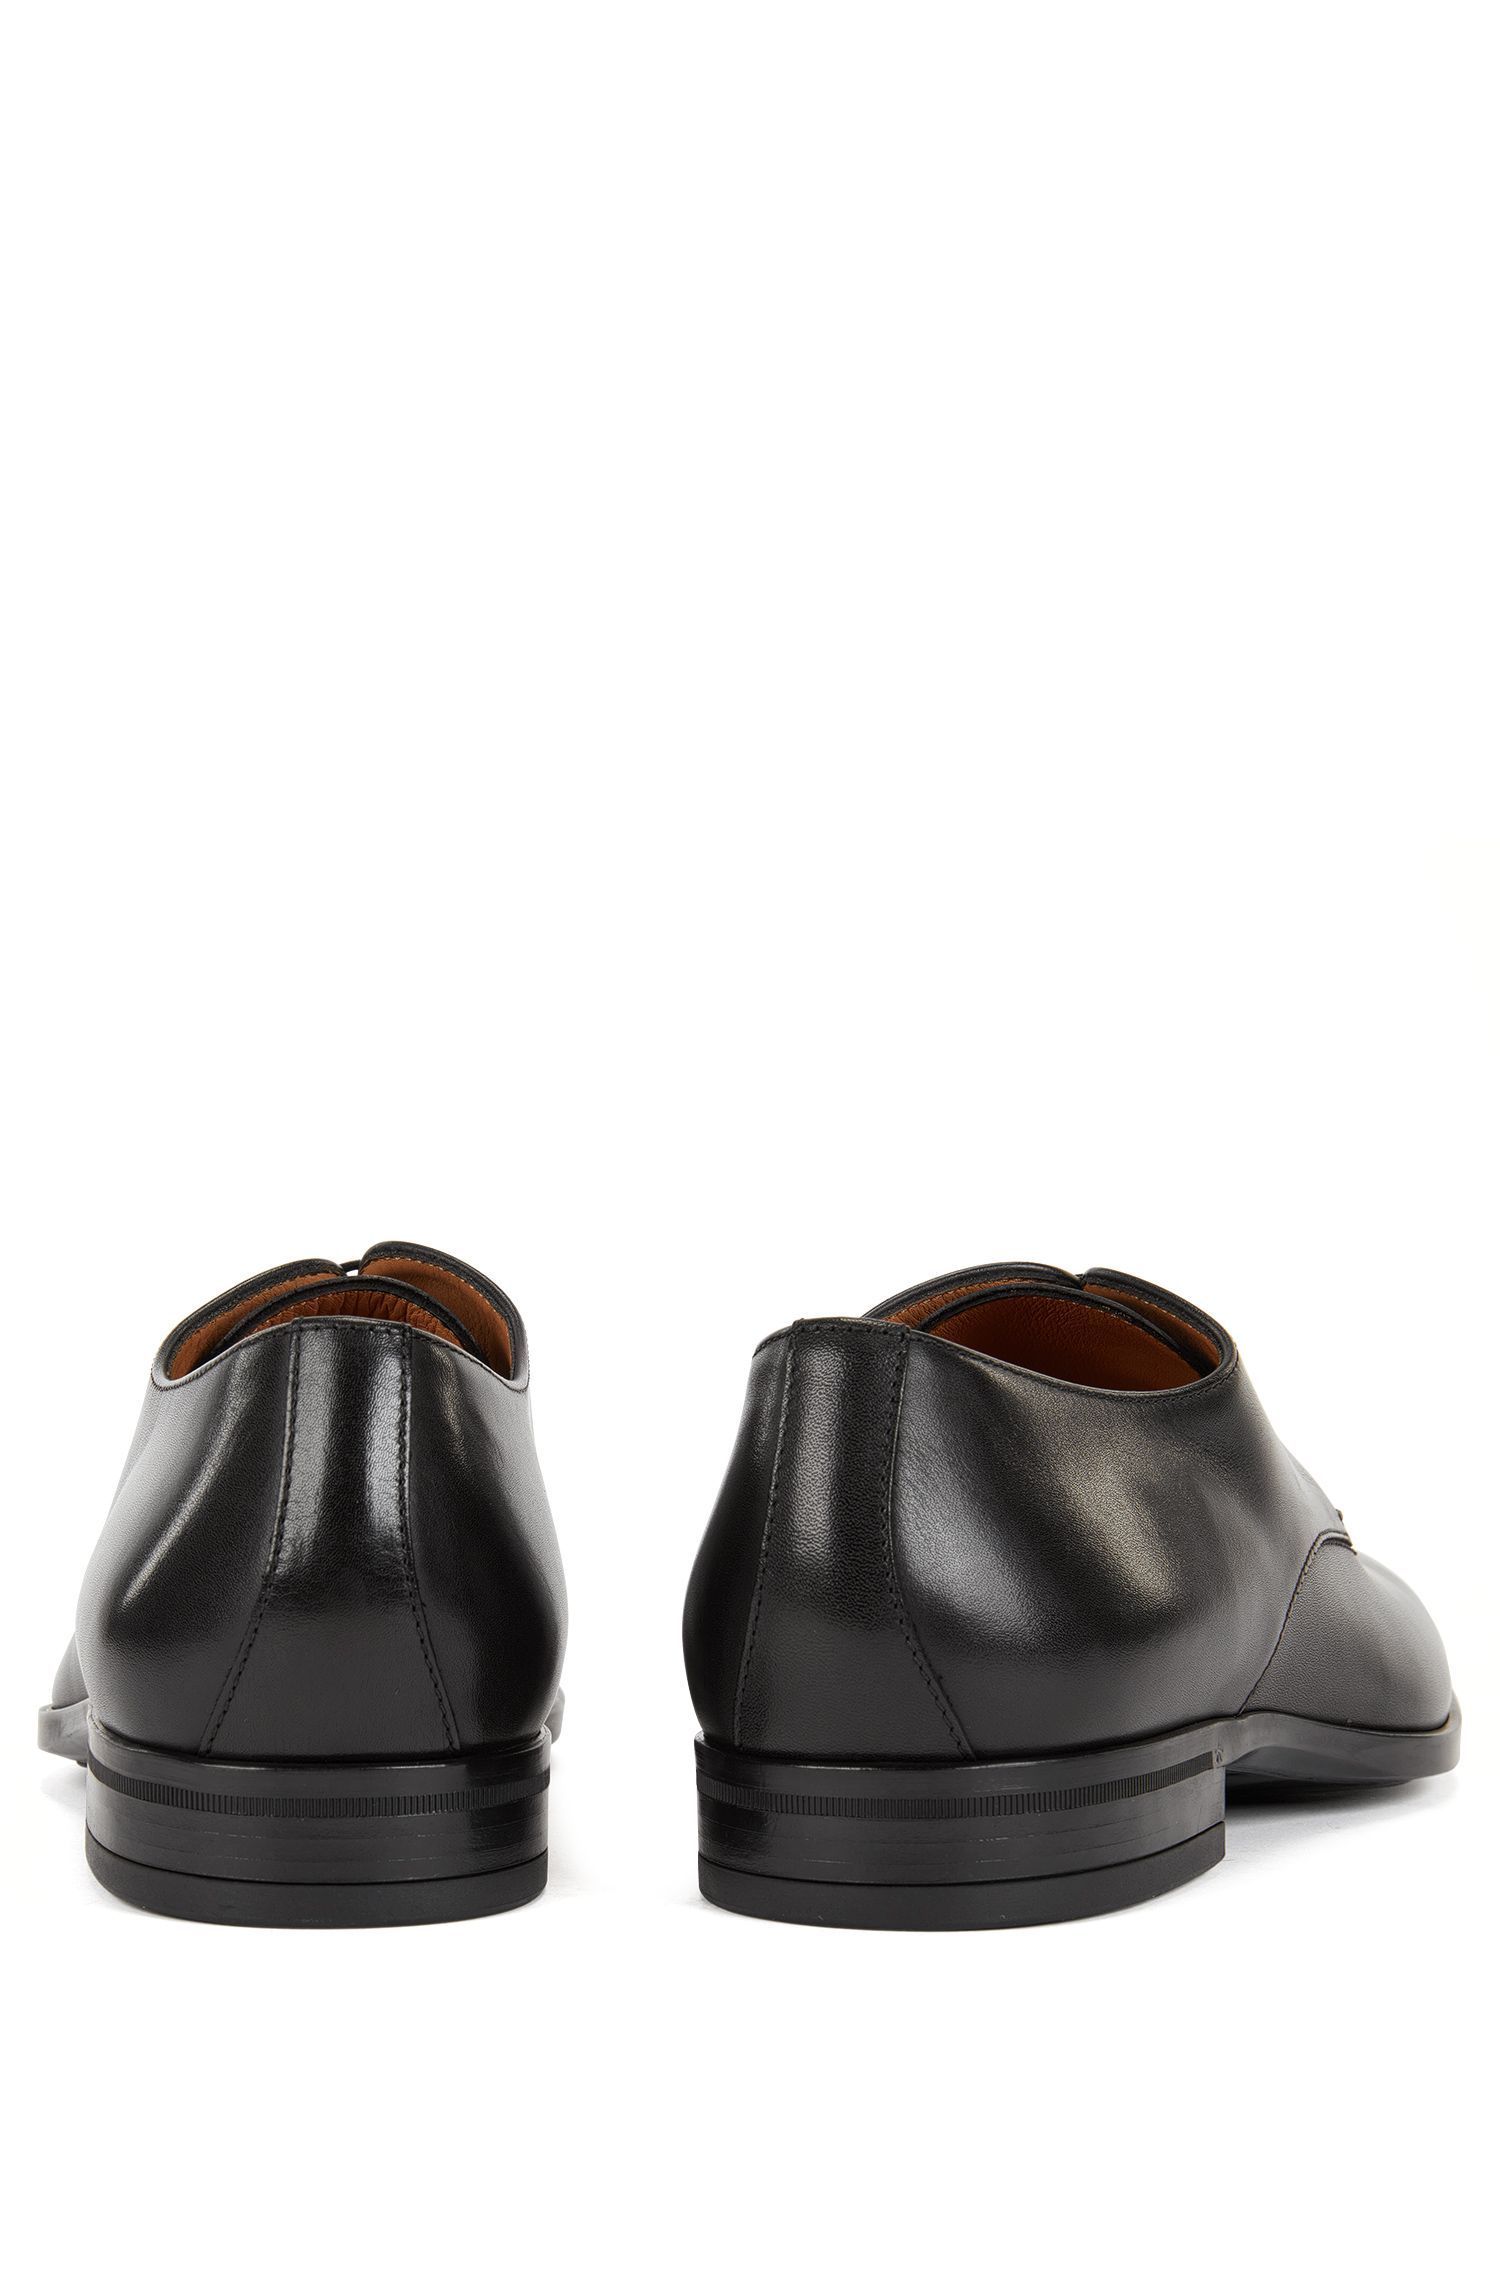 Derby shoes in burnished leather